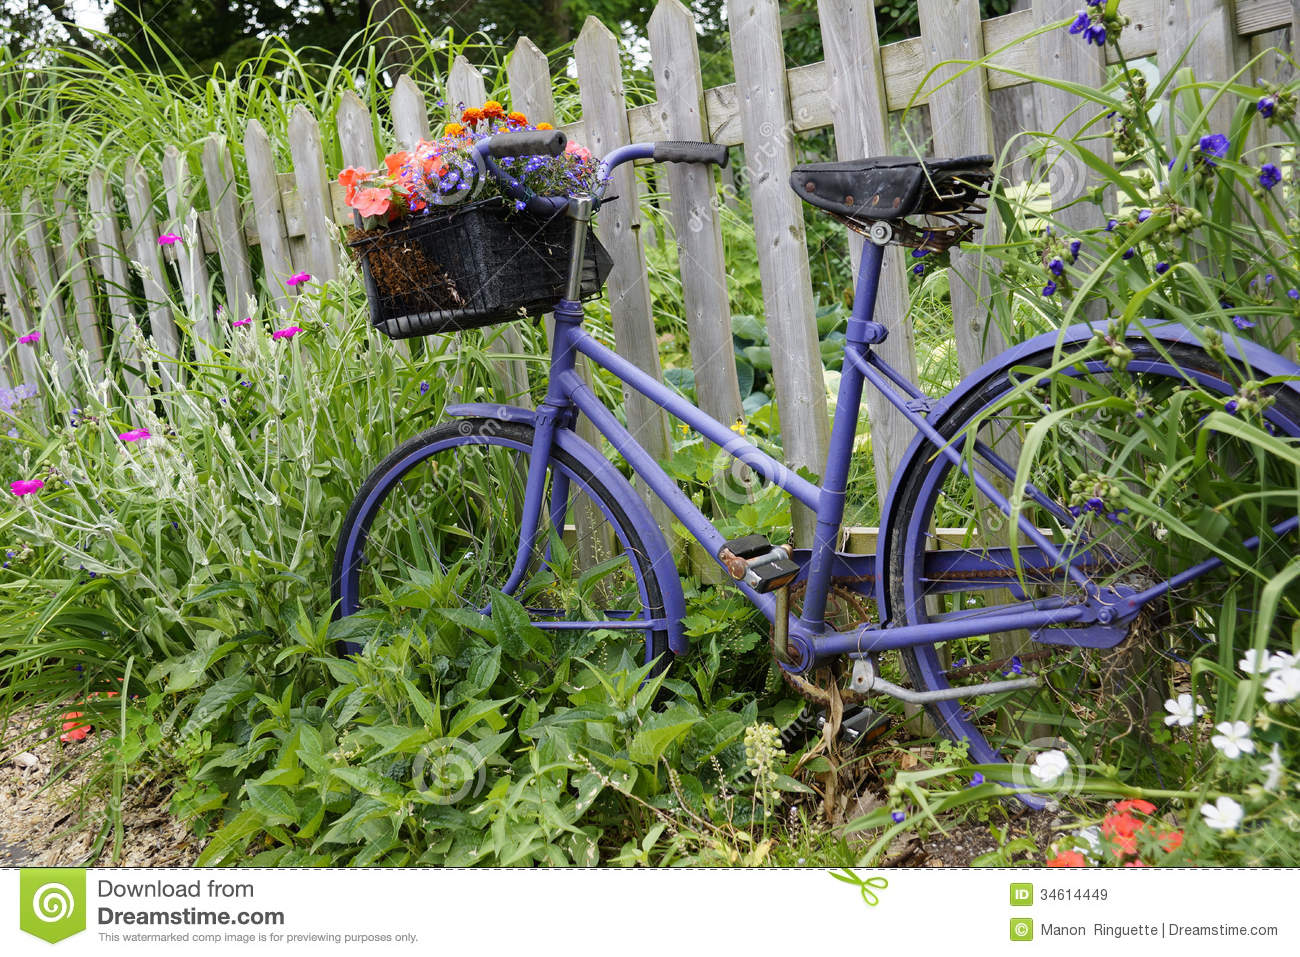 download whimsical garden accents stock image image of handlebars 34614449 - Garden Accents